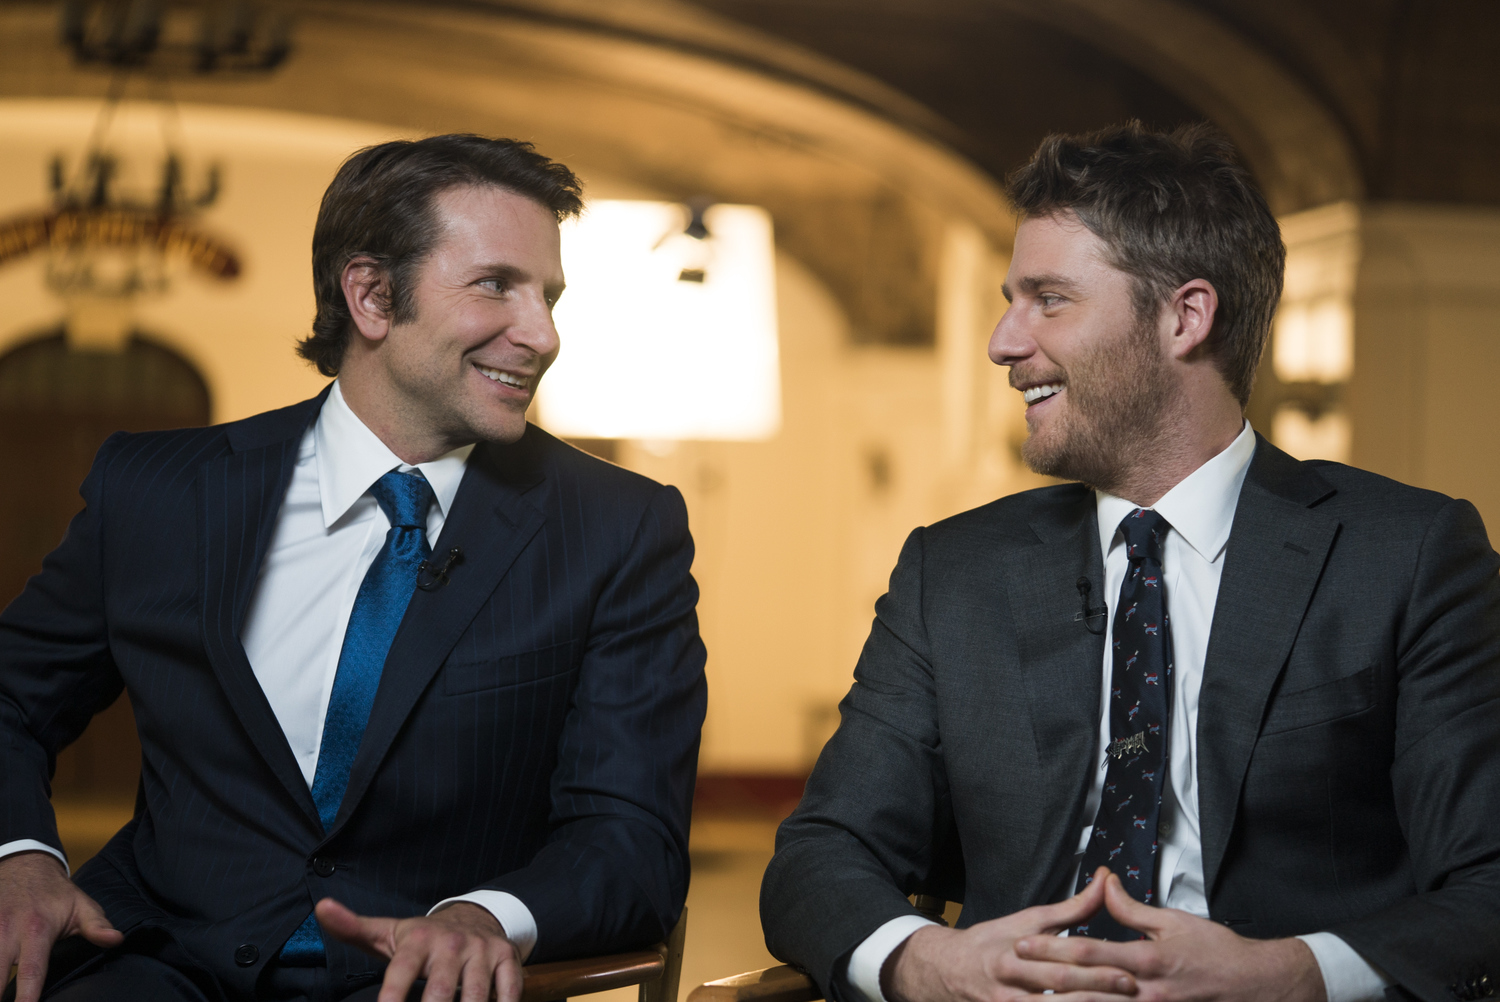 Bradley Cooper and Jake McDorman